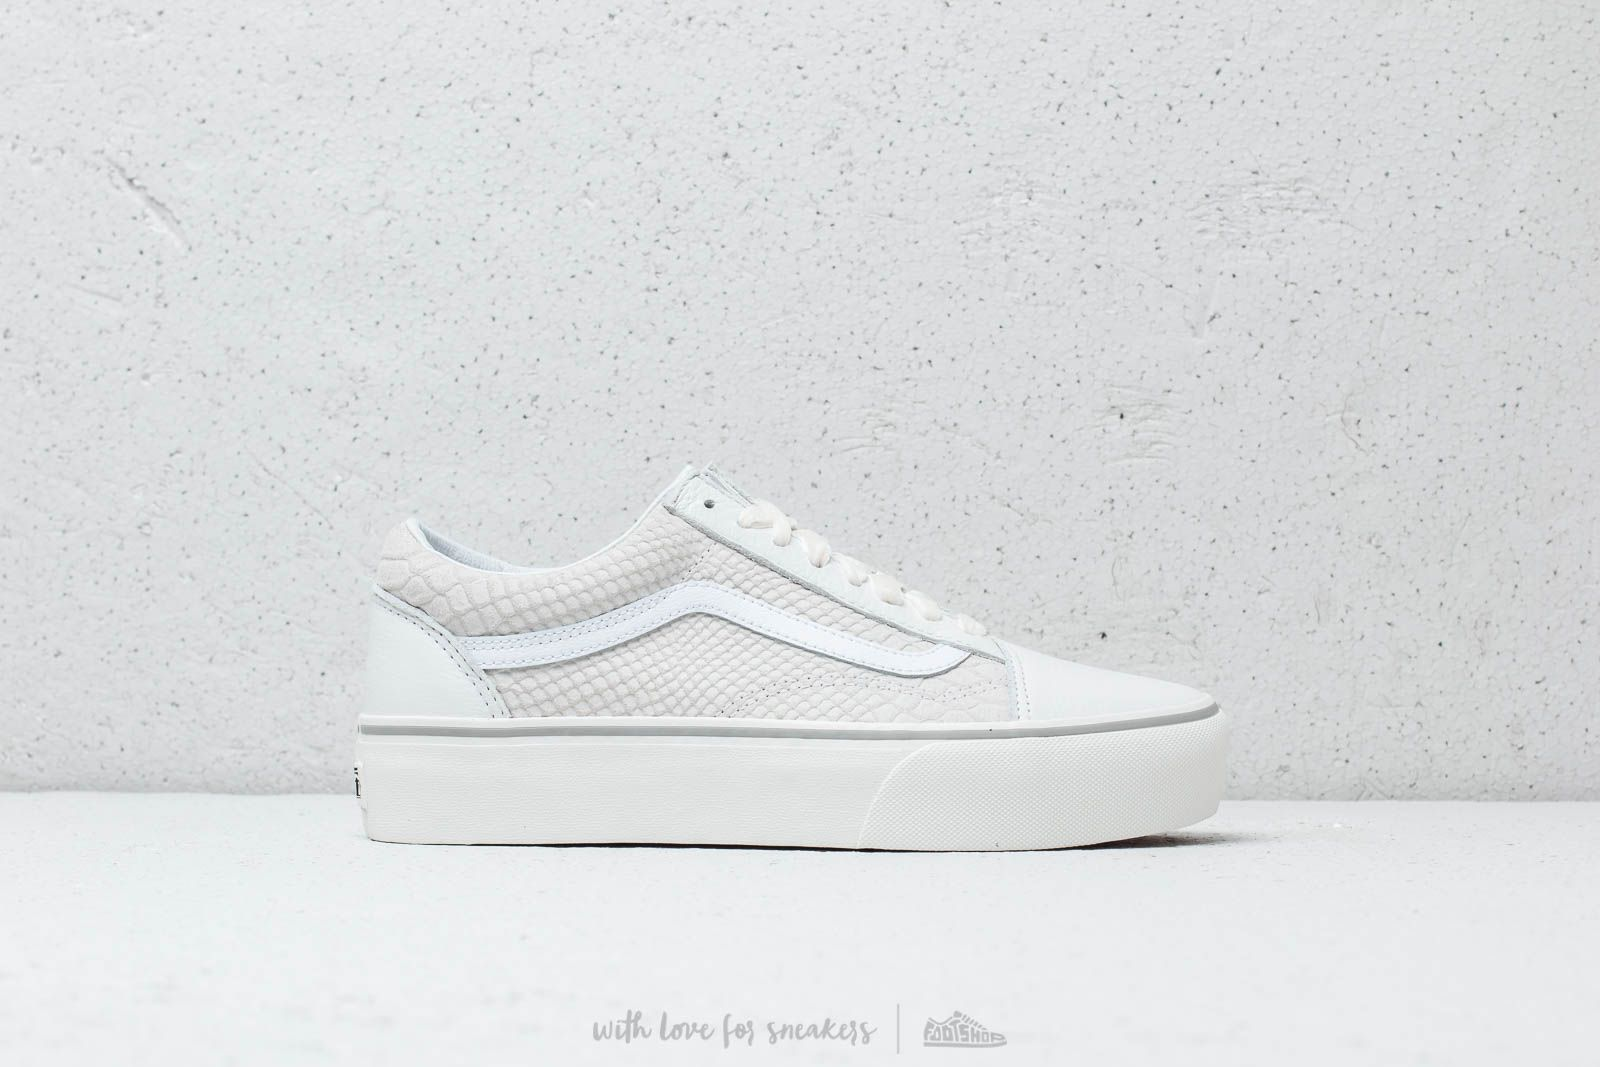 e562b0432e Vans Old Skool Platform (Leather) Snake  White at a great price 100 €